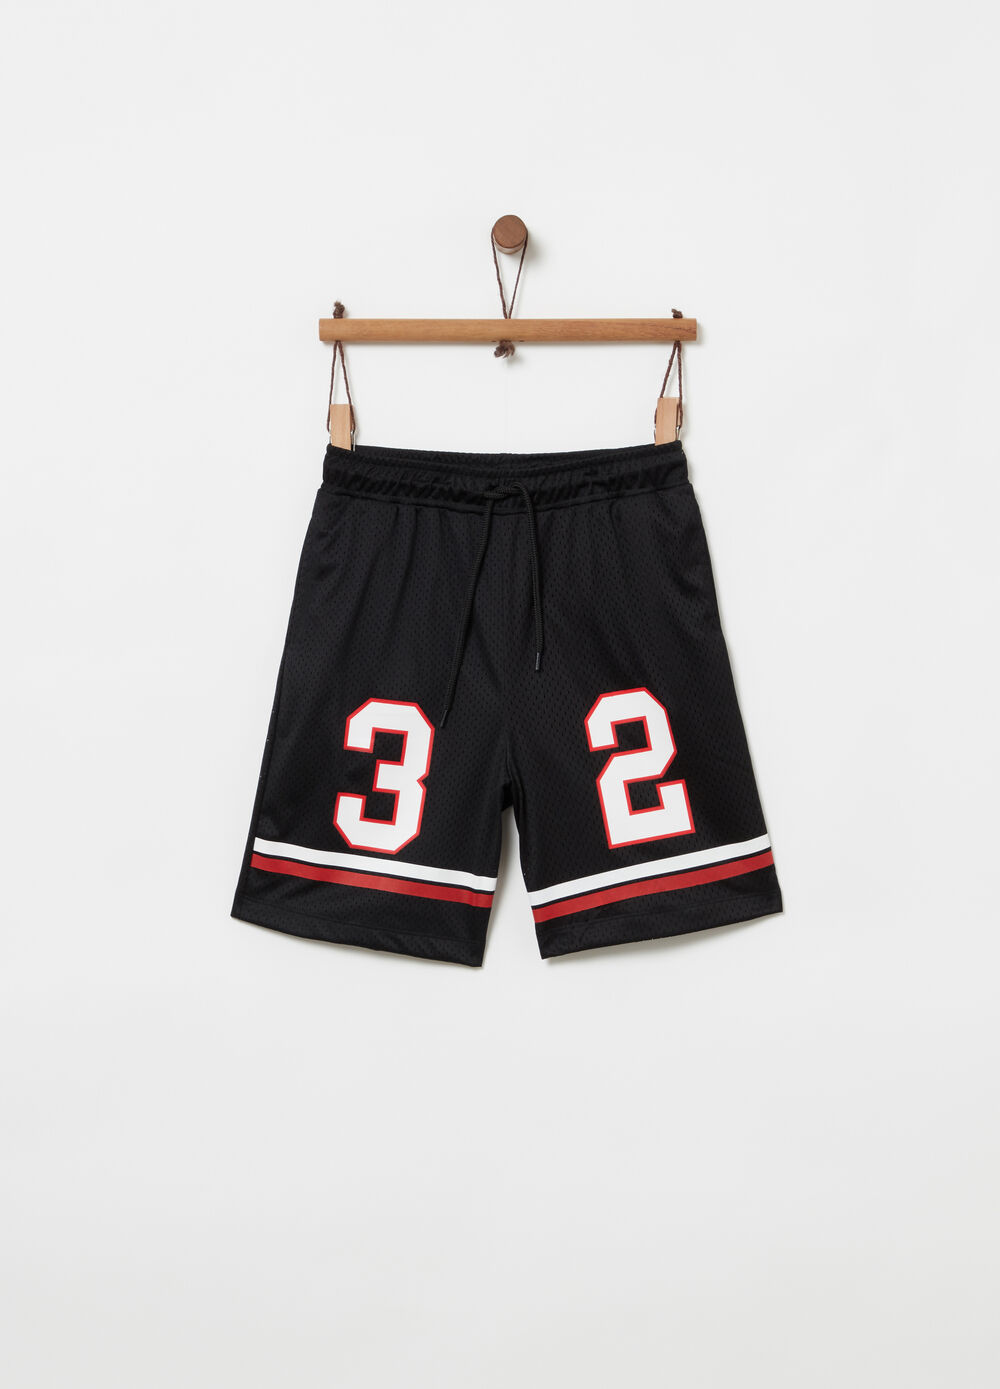 Mesh shorts with jersey lining and drawstring